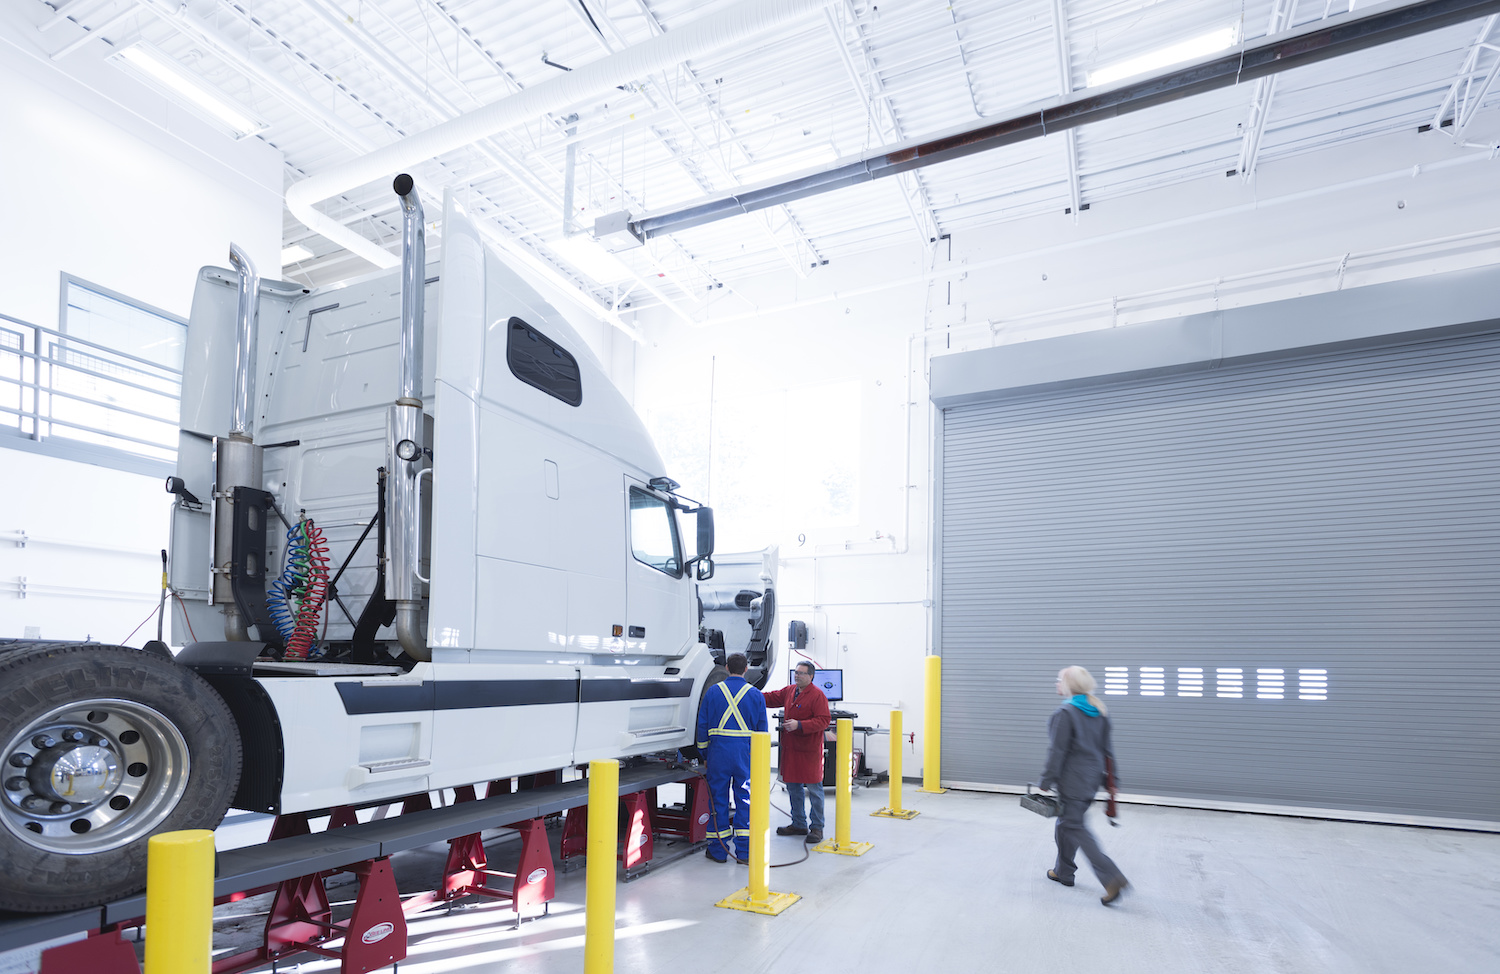 large white truck in a large clean white warehouse with 2 employees working on the engine